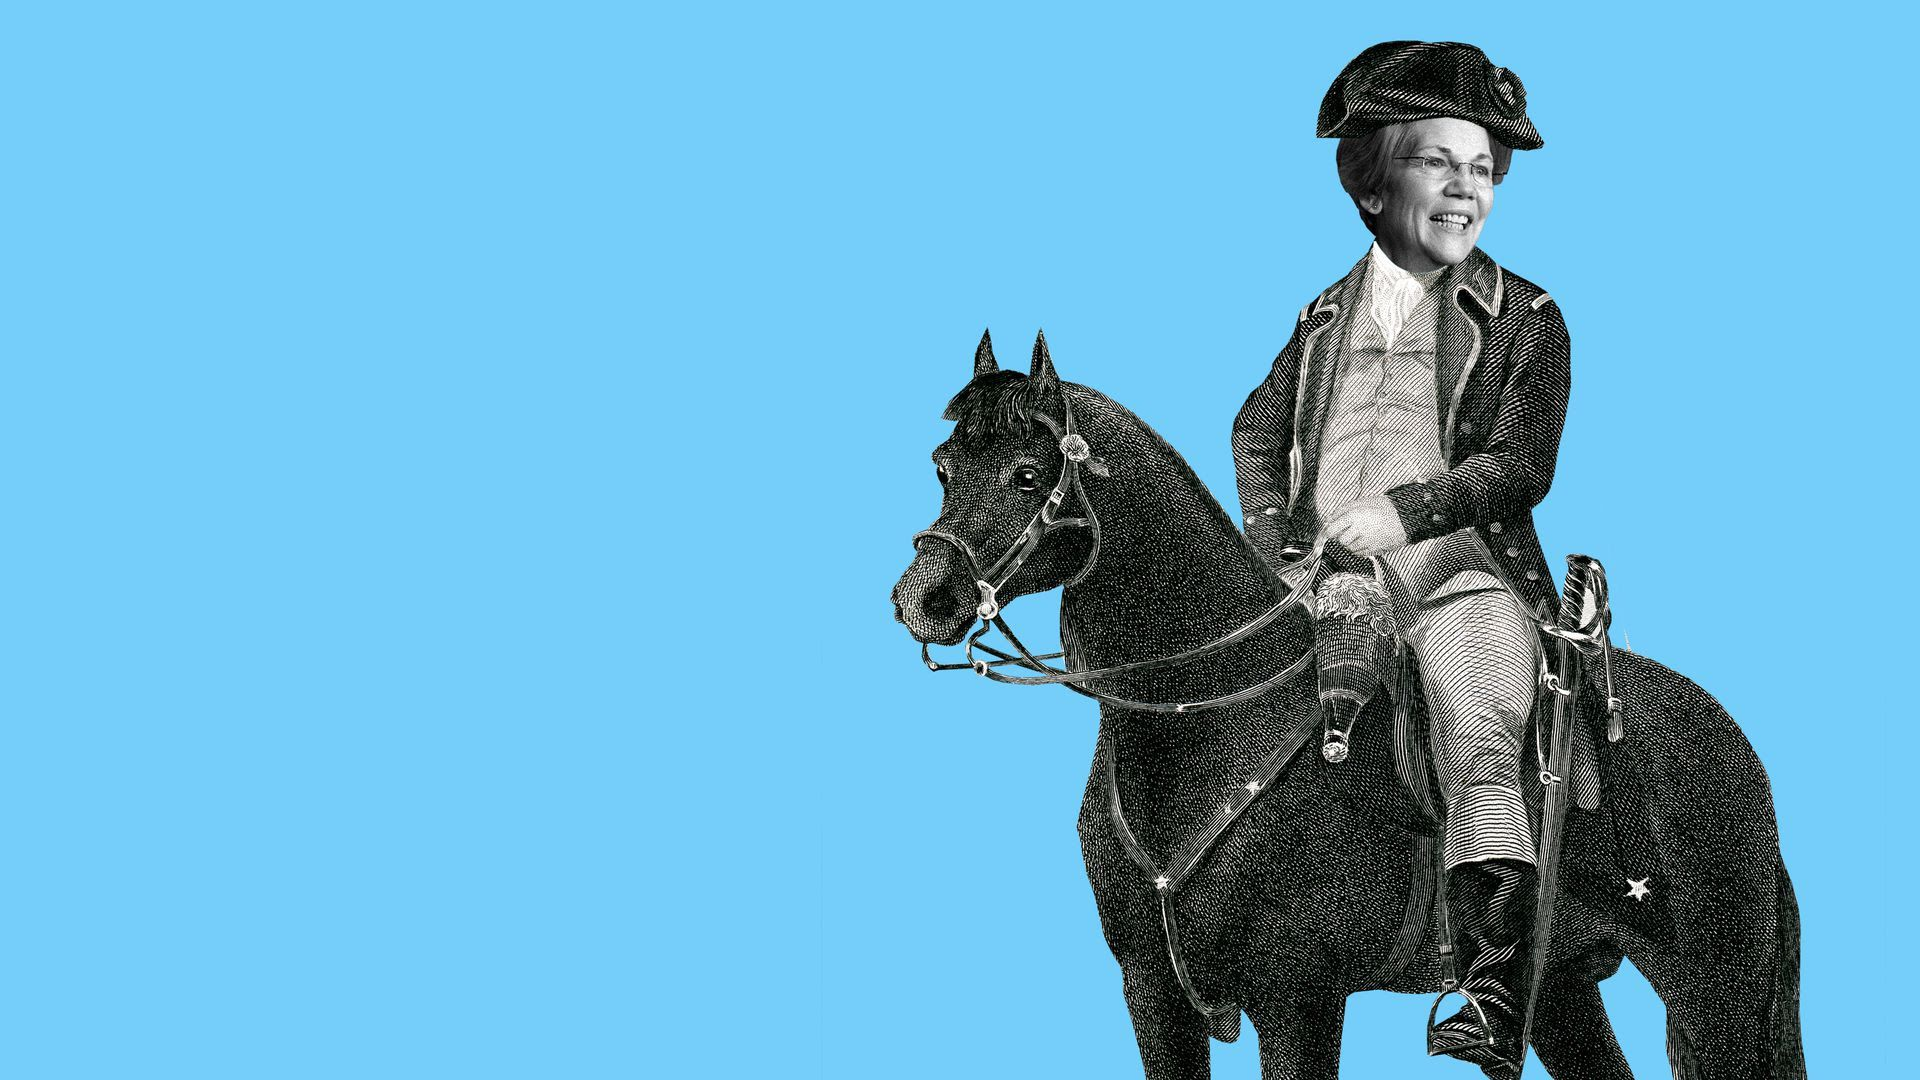 Illustration of Elizabeth Warren in colonial attire riding a horse.